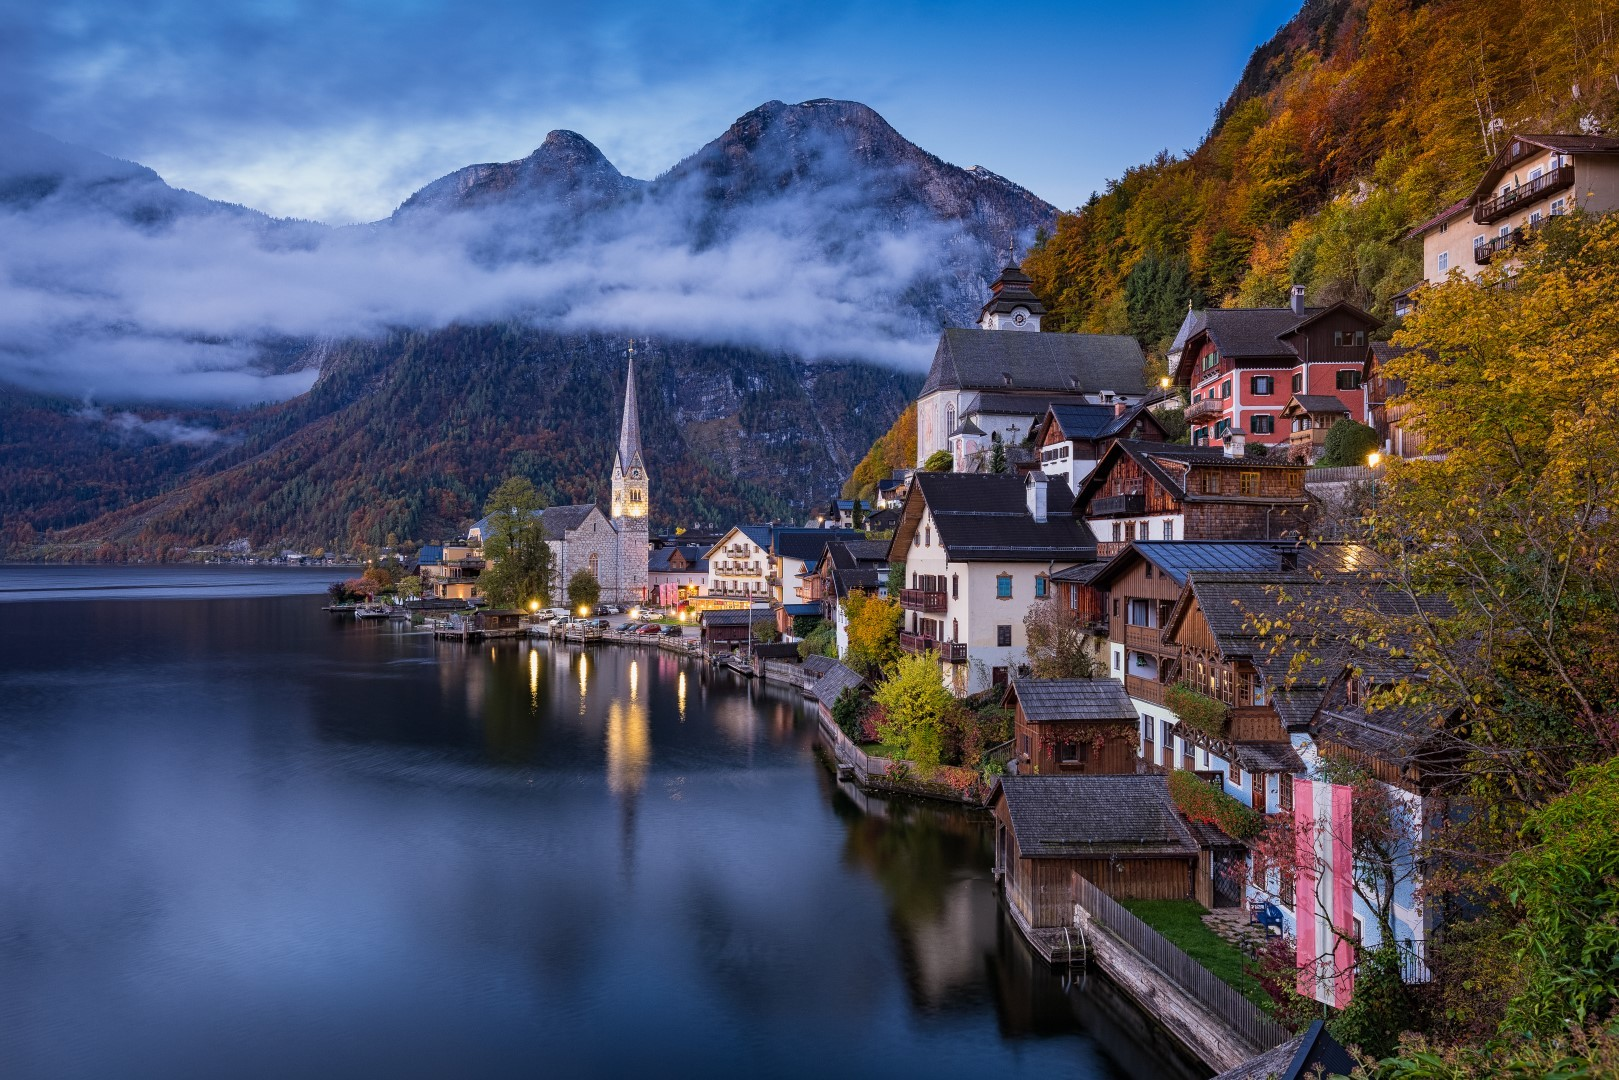 Experience the breathtaking town of Hallstatt like no other place in the Alps. The village, a UNESCO World Heritage site, offers an amazing ambience and hosts the oldest salt mine in the world. ***With Salzburg Drop-off package option. Details see below***